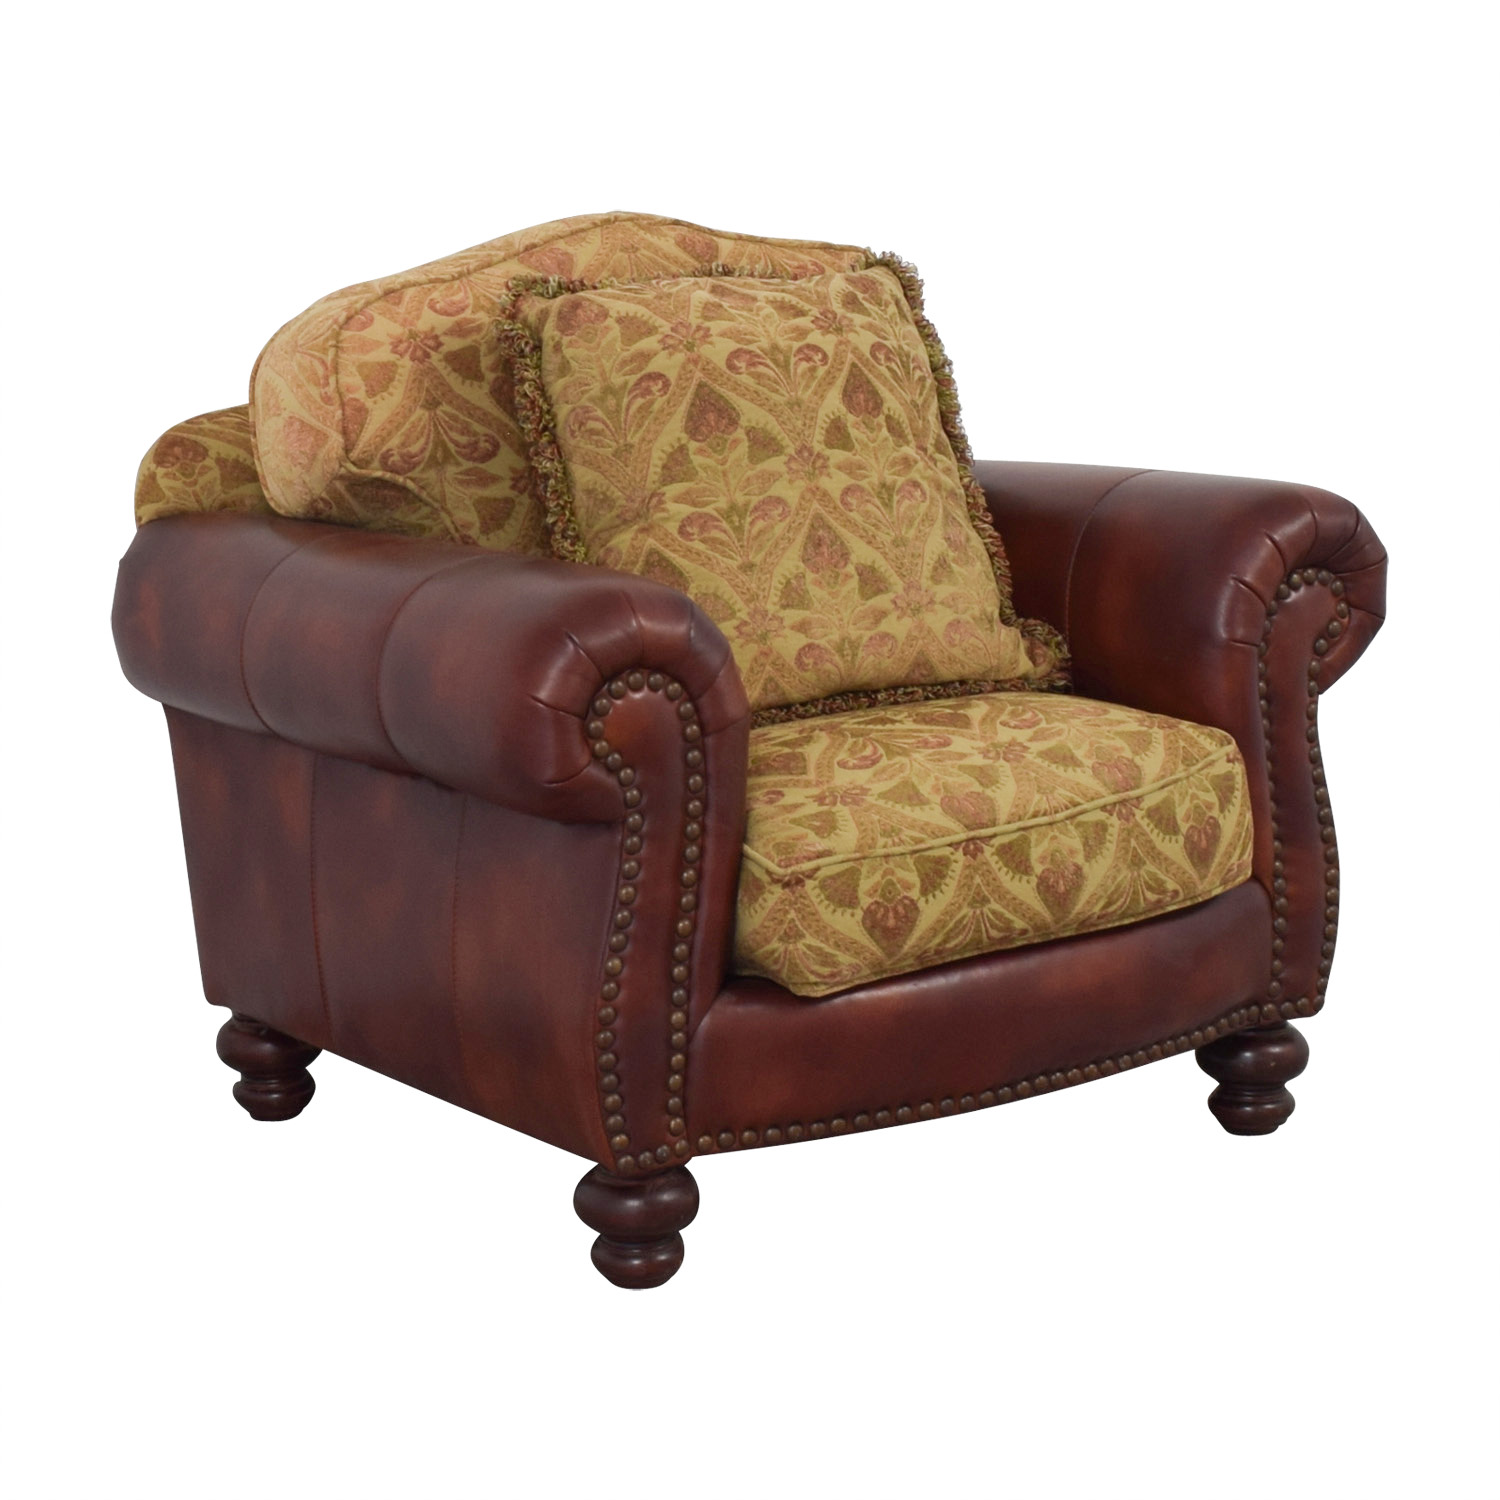 90 Off Distinctions Distinctions Red Leather Nailhead